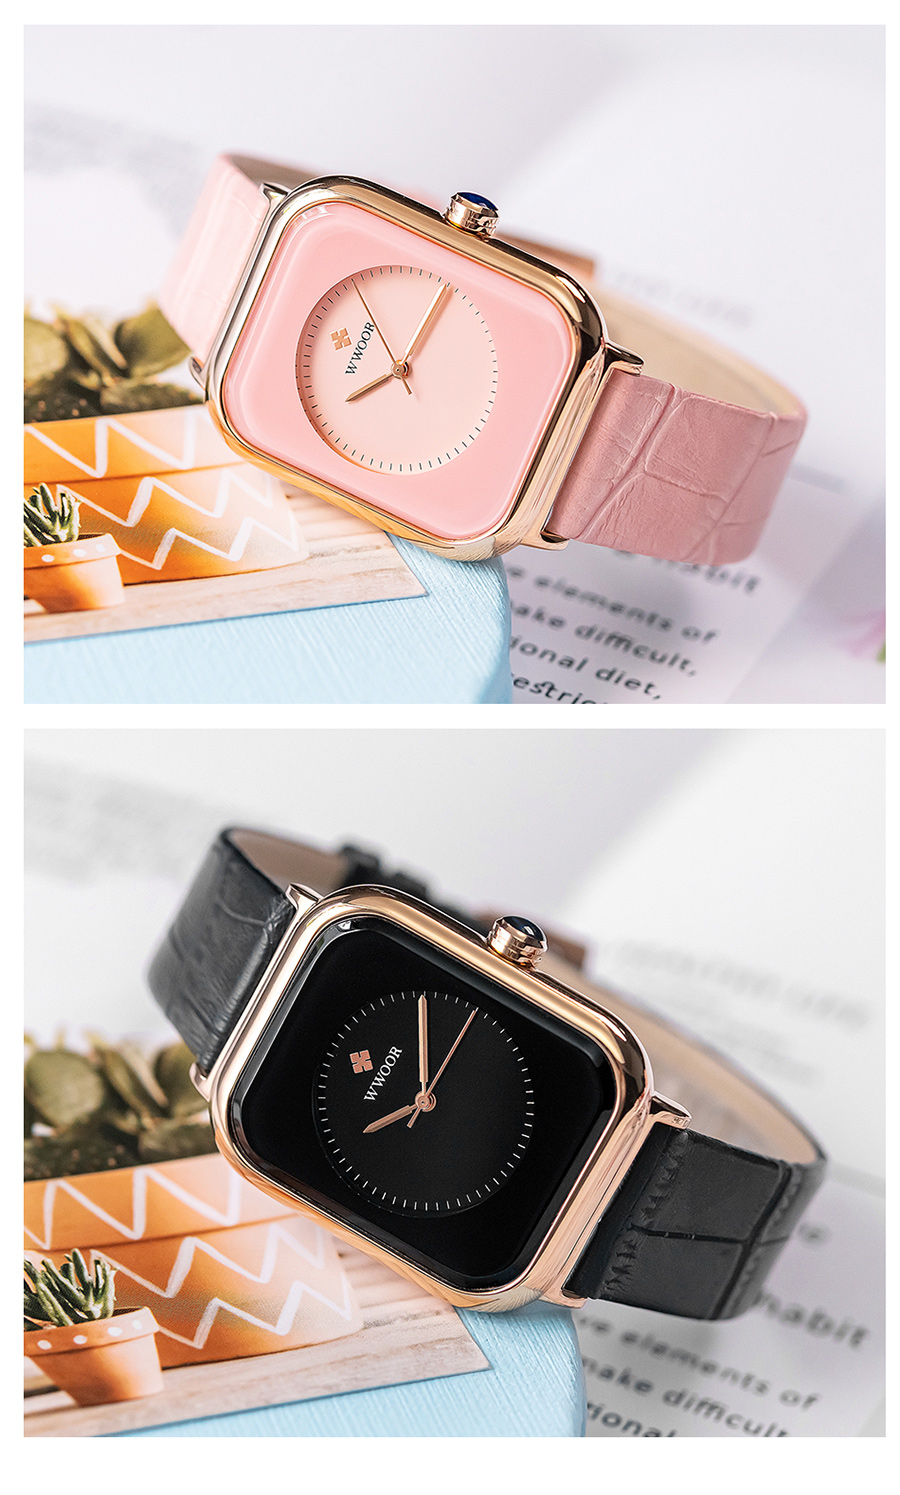 WWOOR 2020 Women Watches Top Brand Luxury Women Quartz Wristwatch Fashion Elegant Black Leather Watch For Women relogio feminino